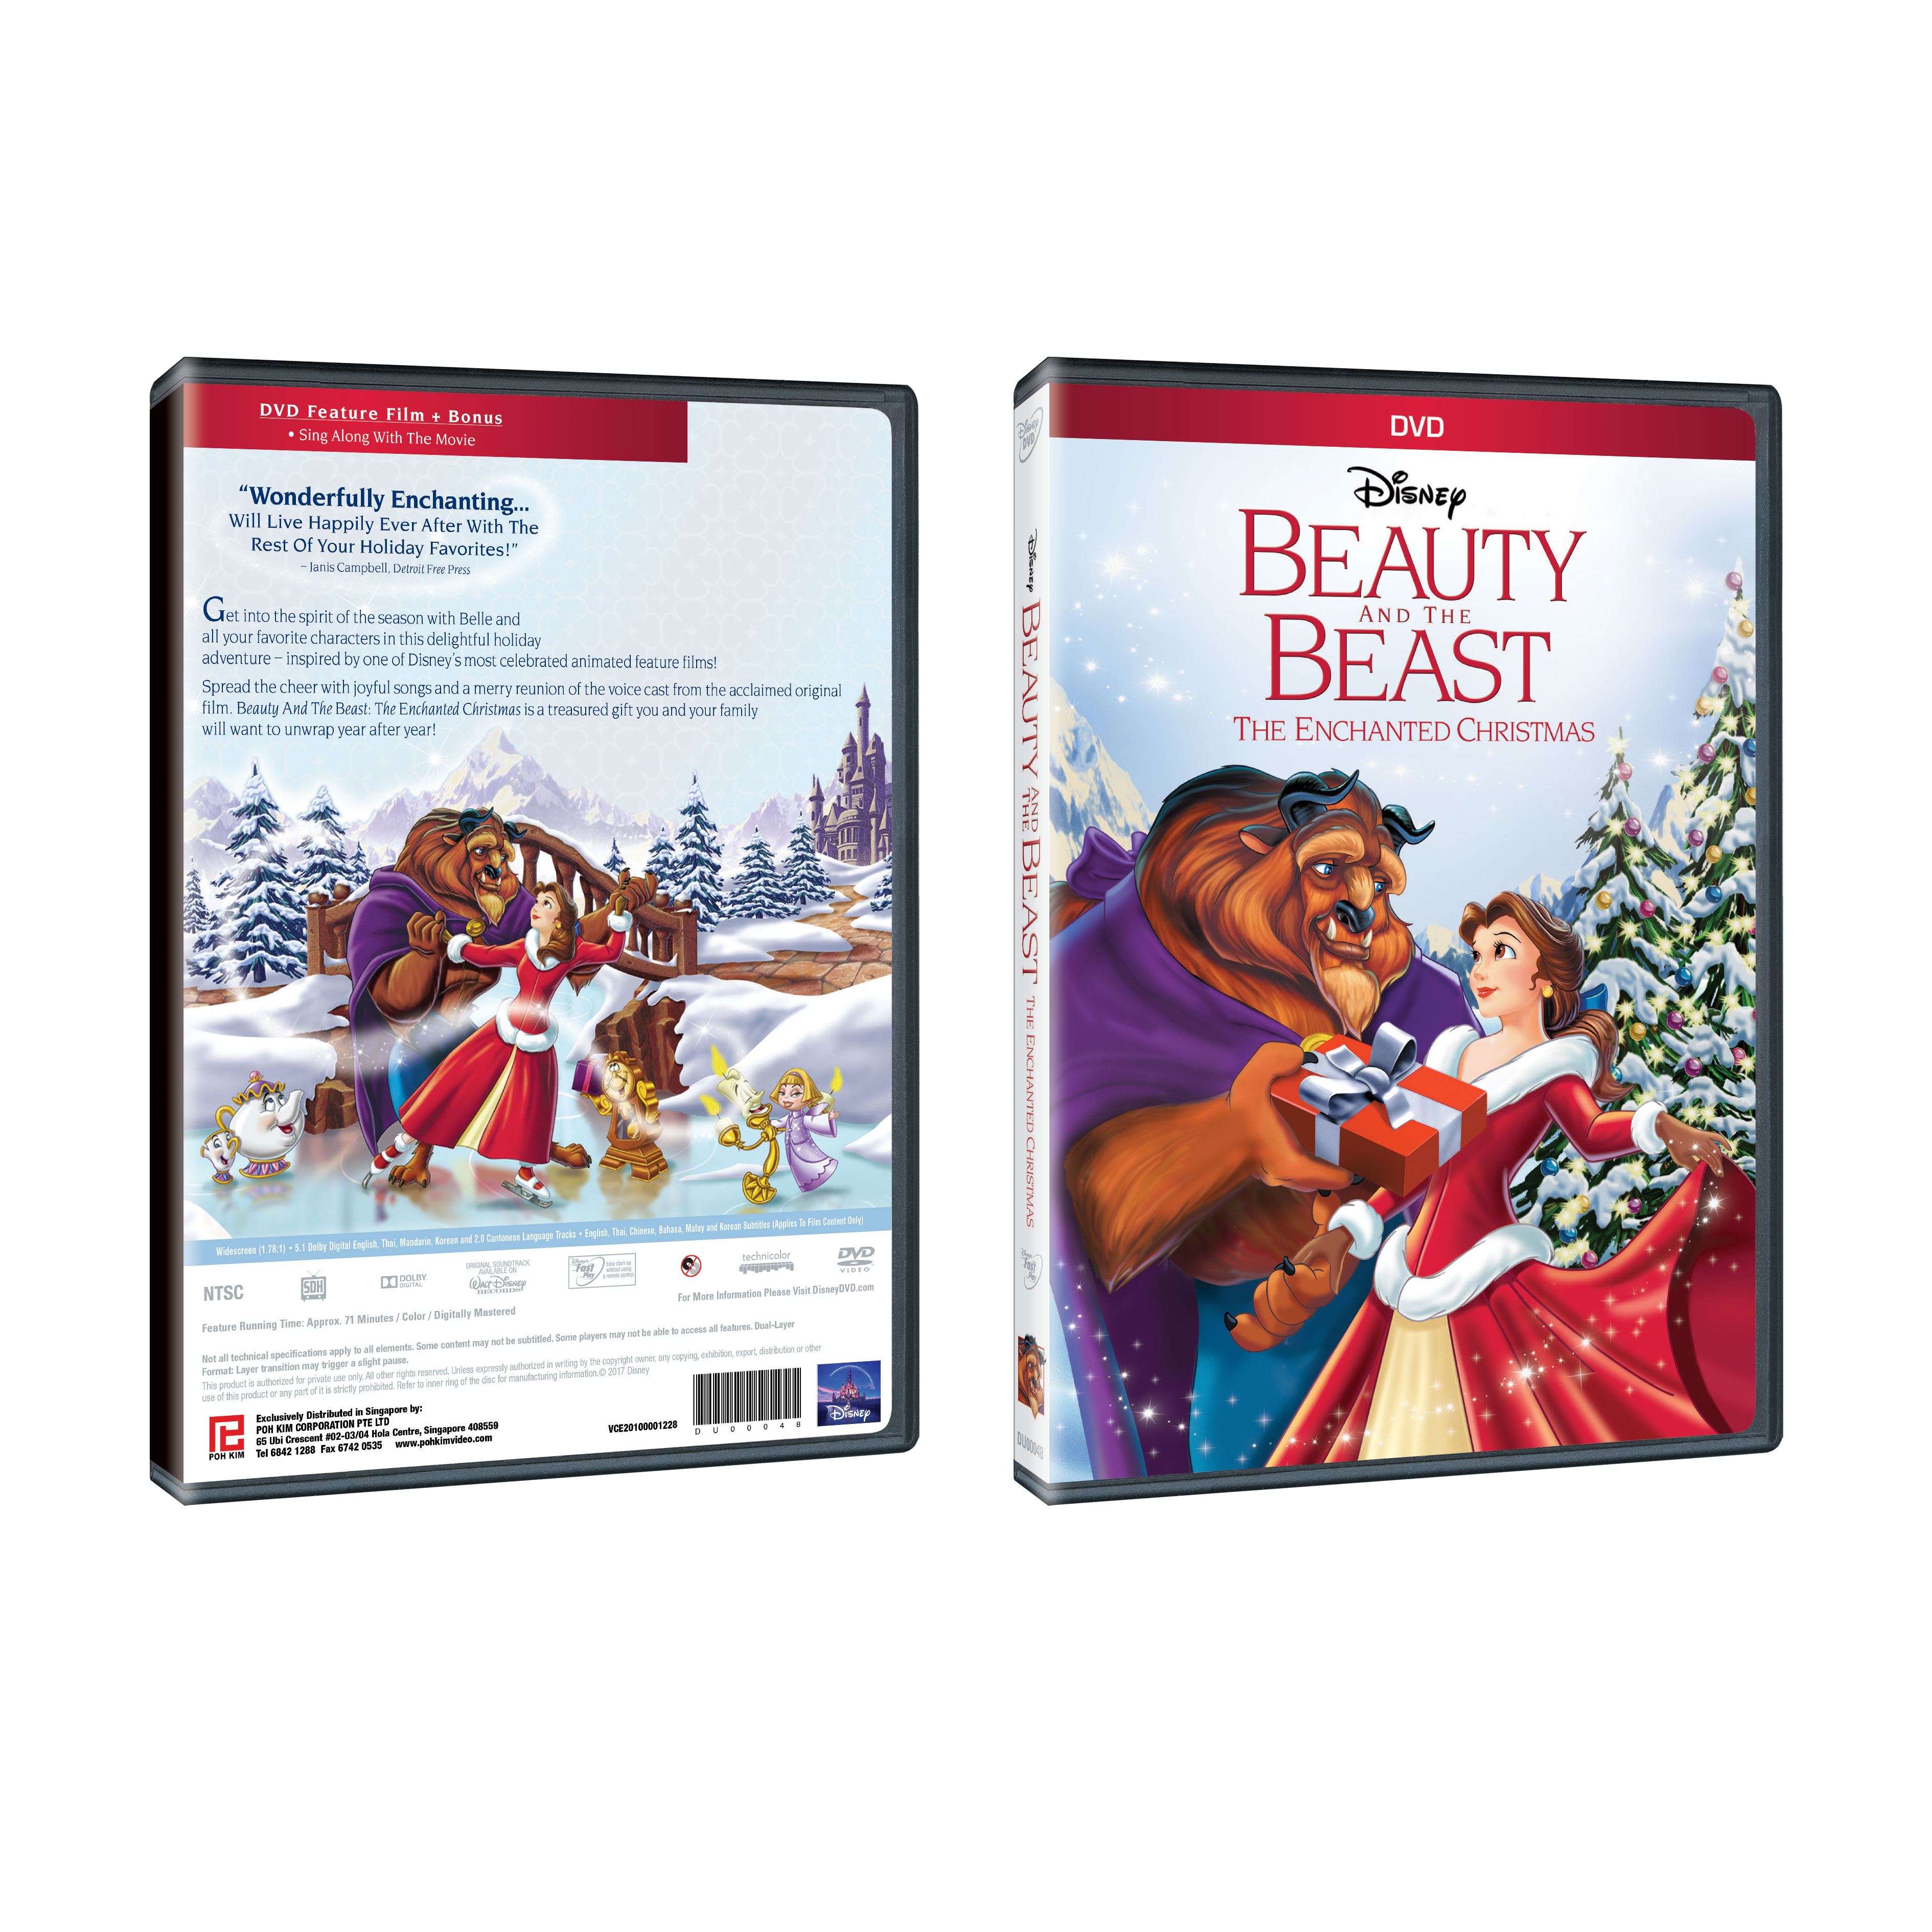 Enchanted Christmas Cast.Beauty And The Beast The Enchanted Christmas Dvd